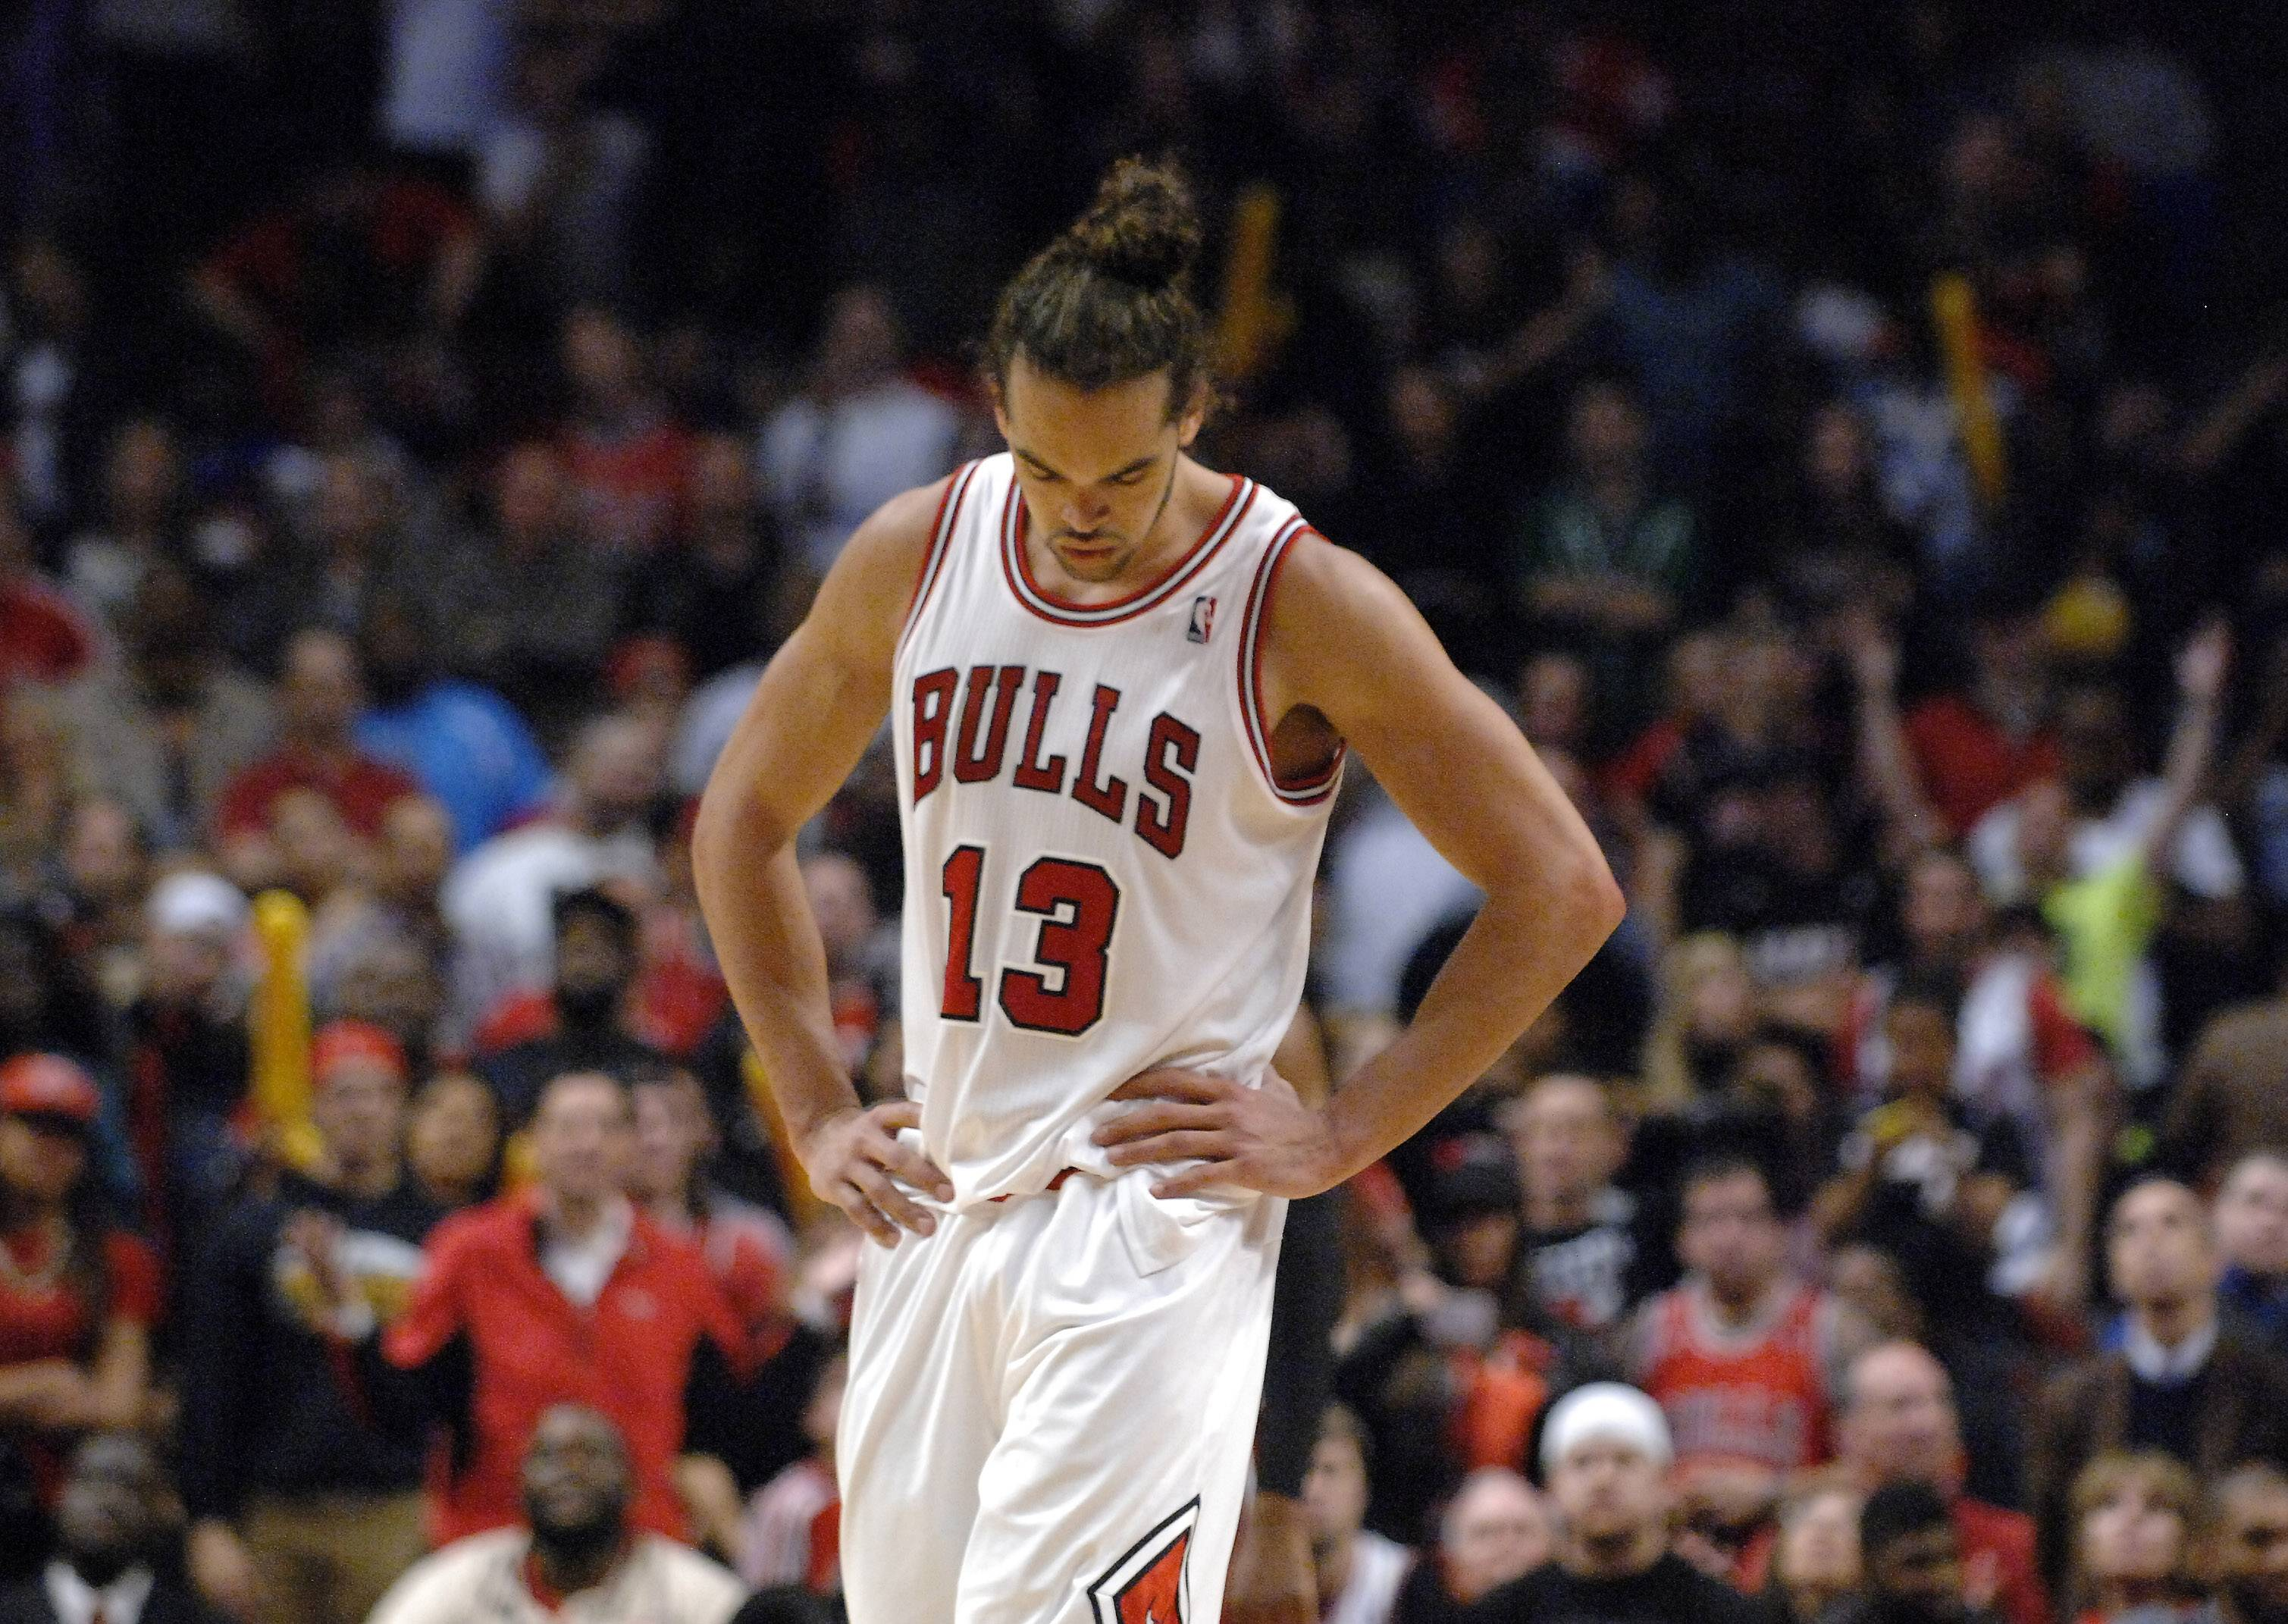 Chicago Bulls center Joakim Noah (13) walks to the bench after fouling out during Game 3 of an NBA basketball playoffs Eastern Conference semifinal on Friday, May 10, 2013, in Chicago. The heat won 104-94.